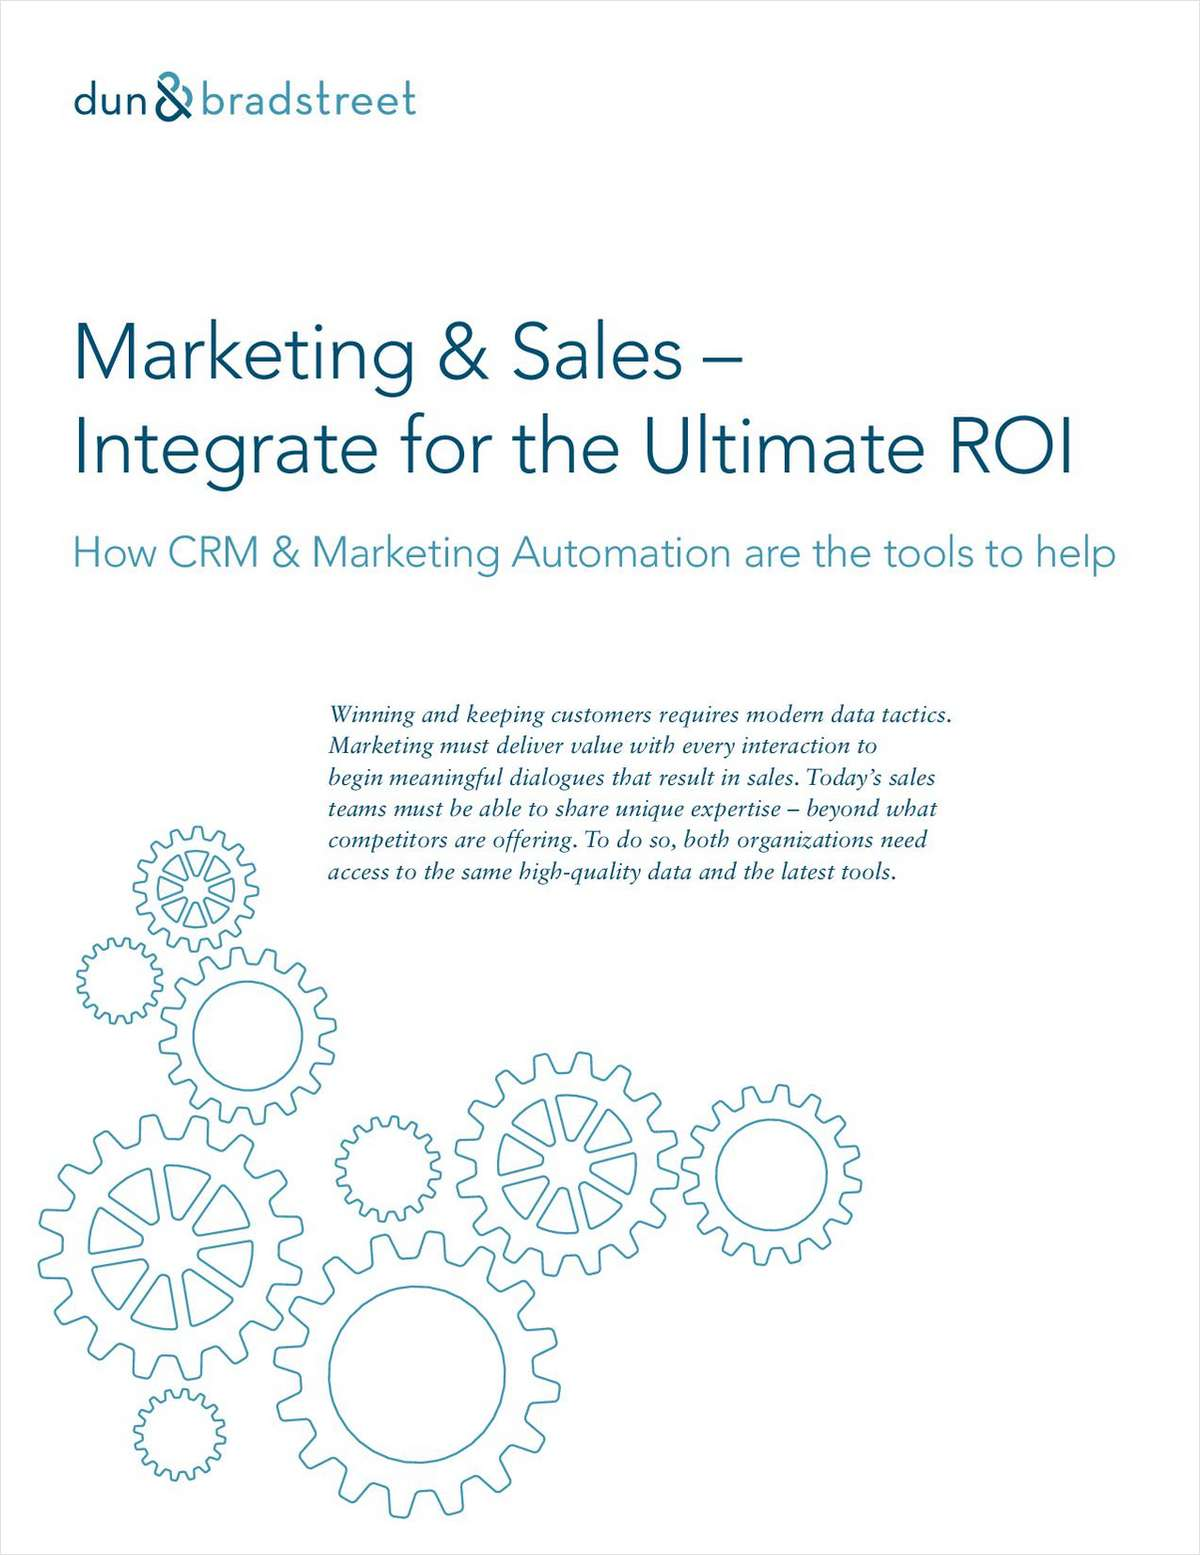 Integrate Marketing Automation and CRM for the Ultimate ROI